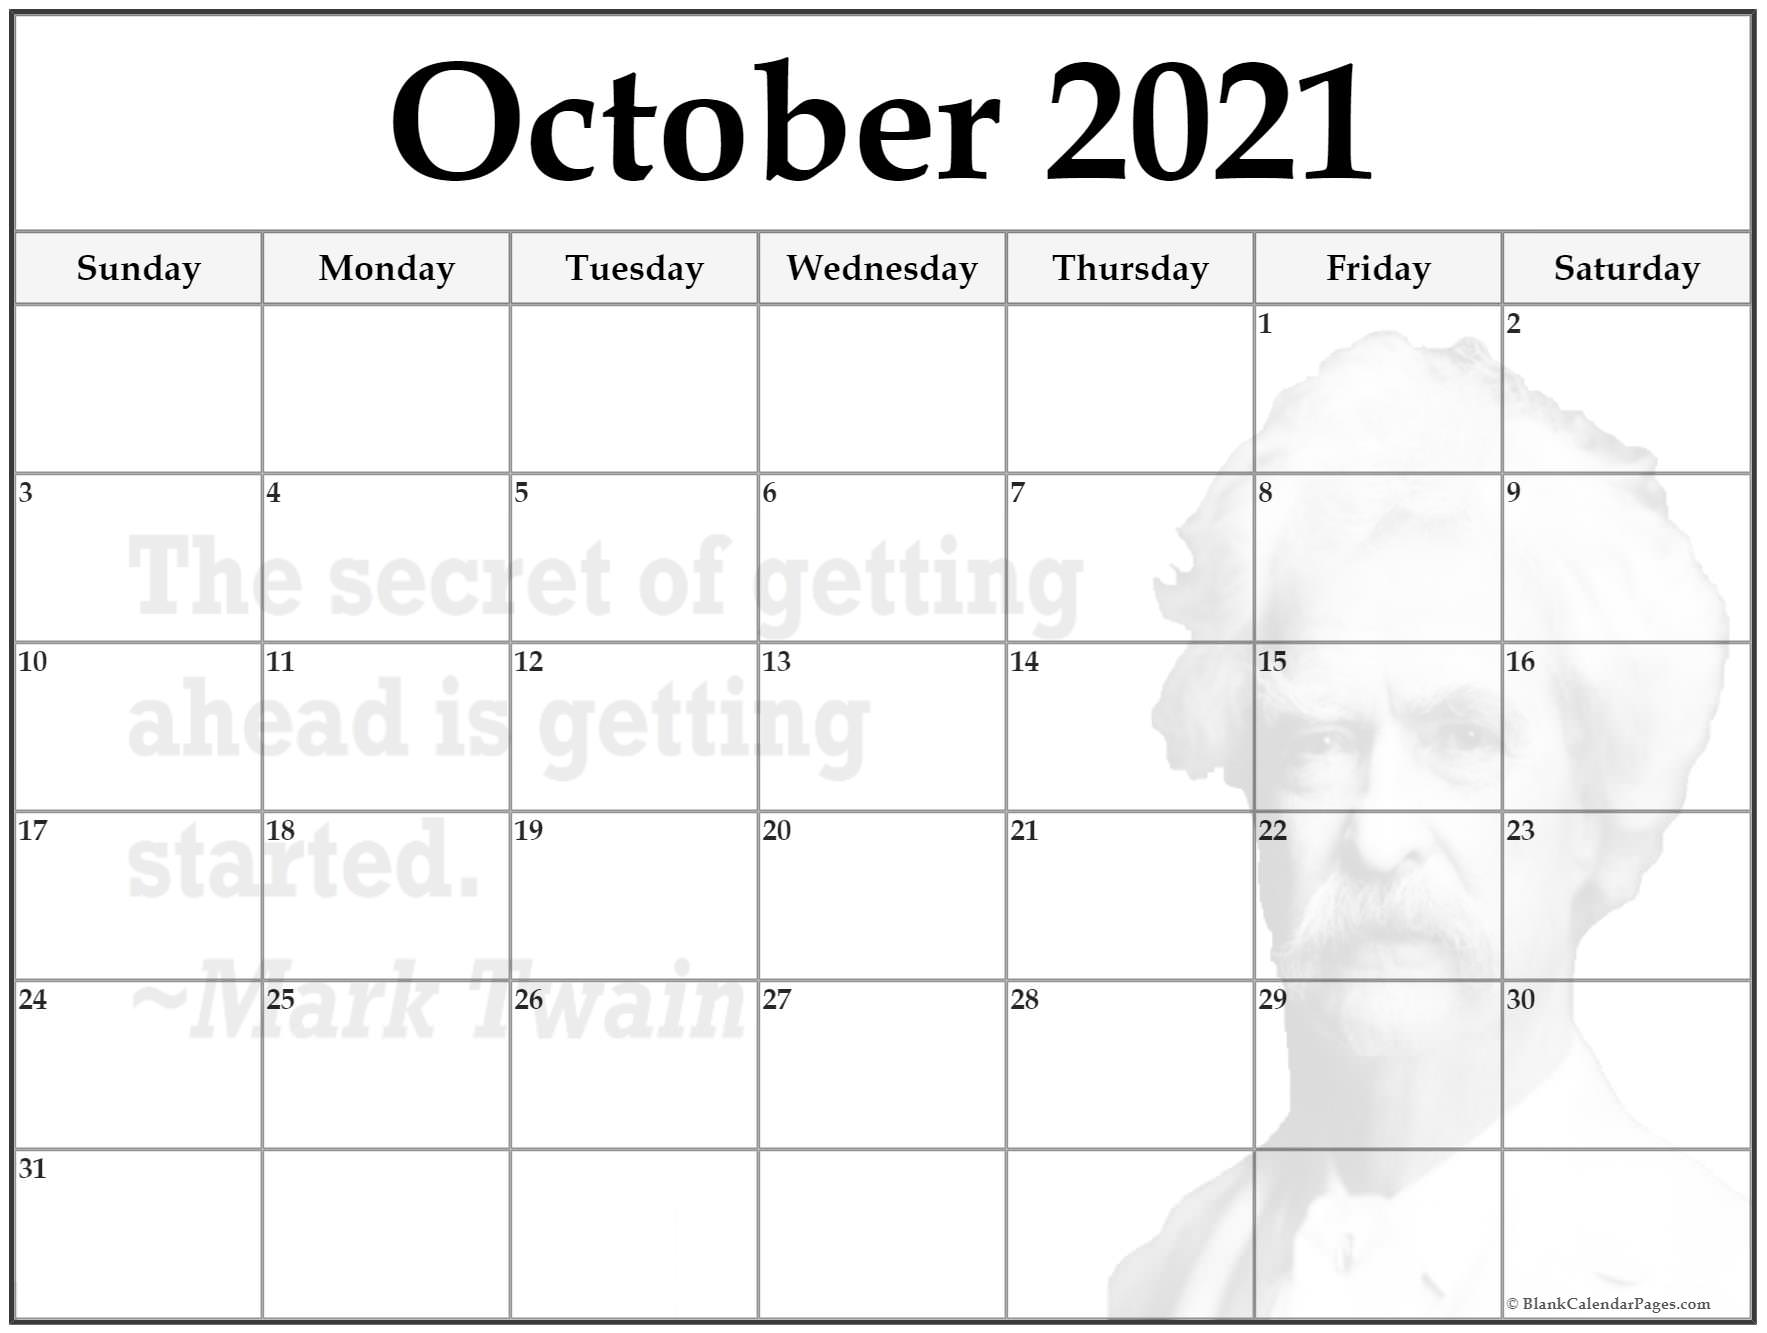 October 2020 printable quote calendar template. The secret of getting ahead is getting started. ~Mark Twain